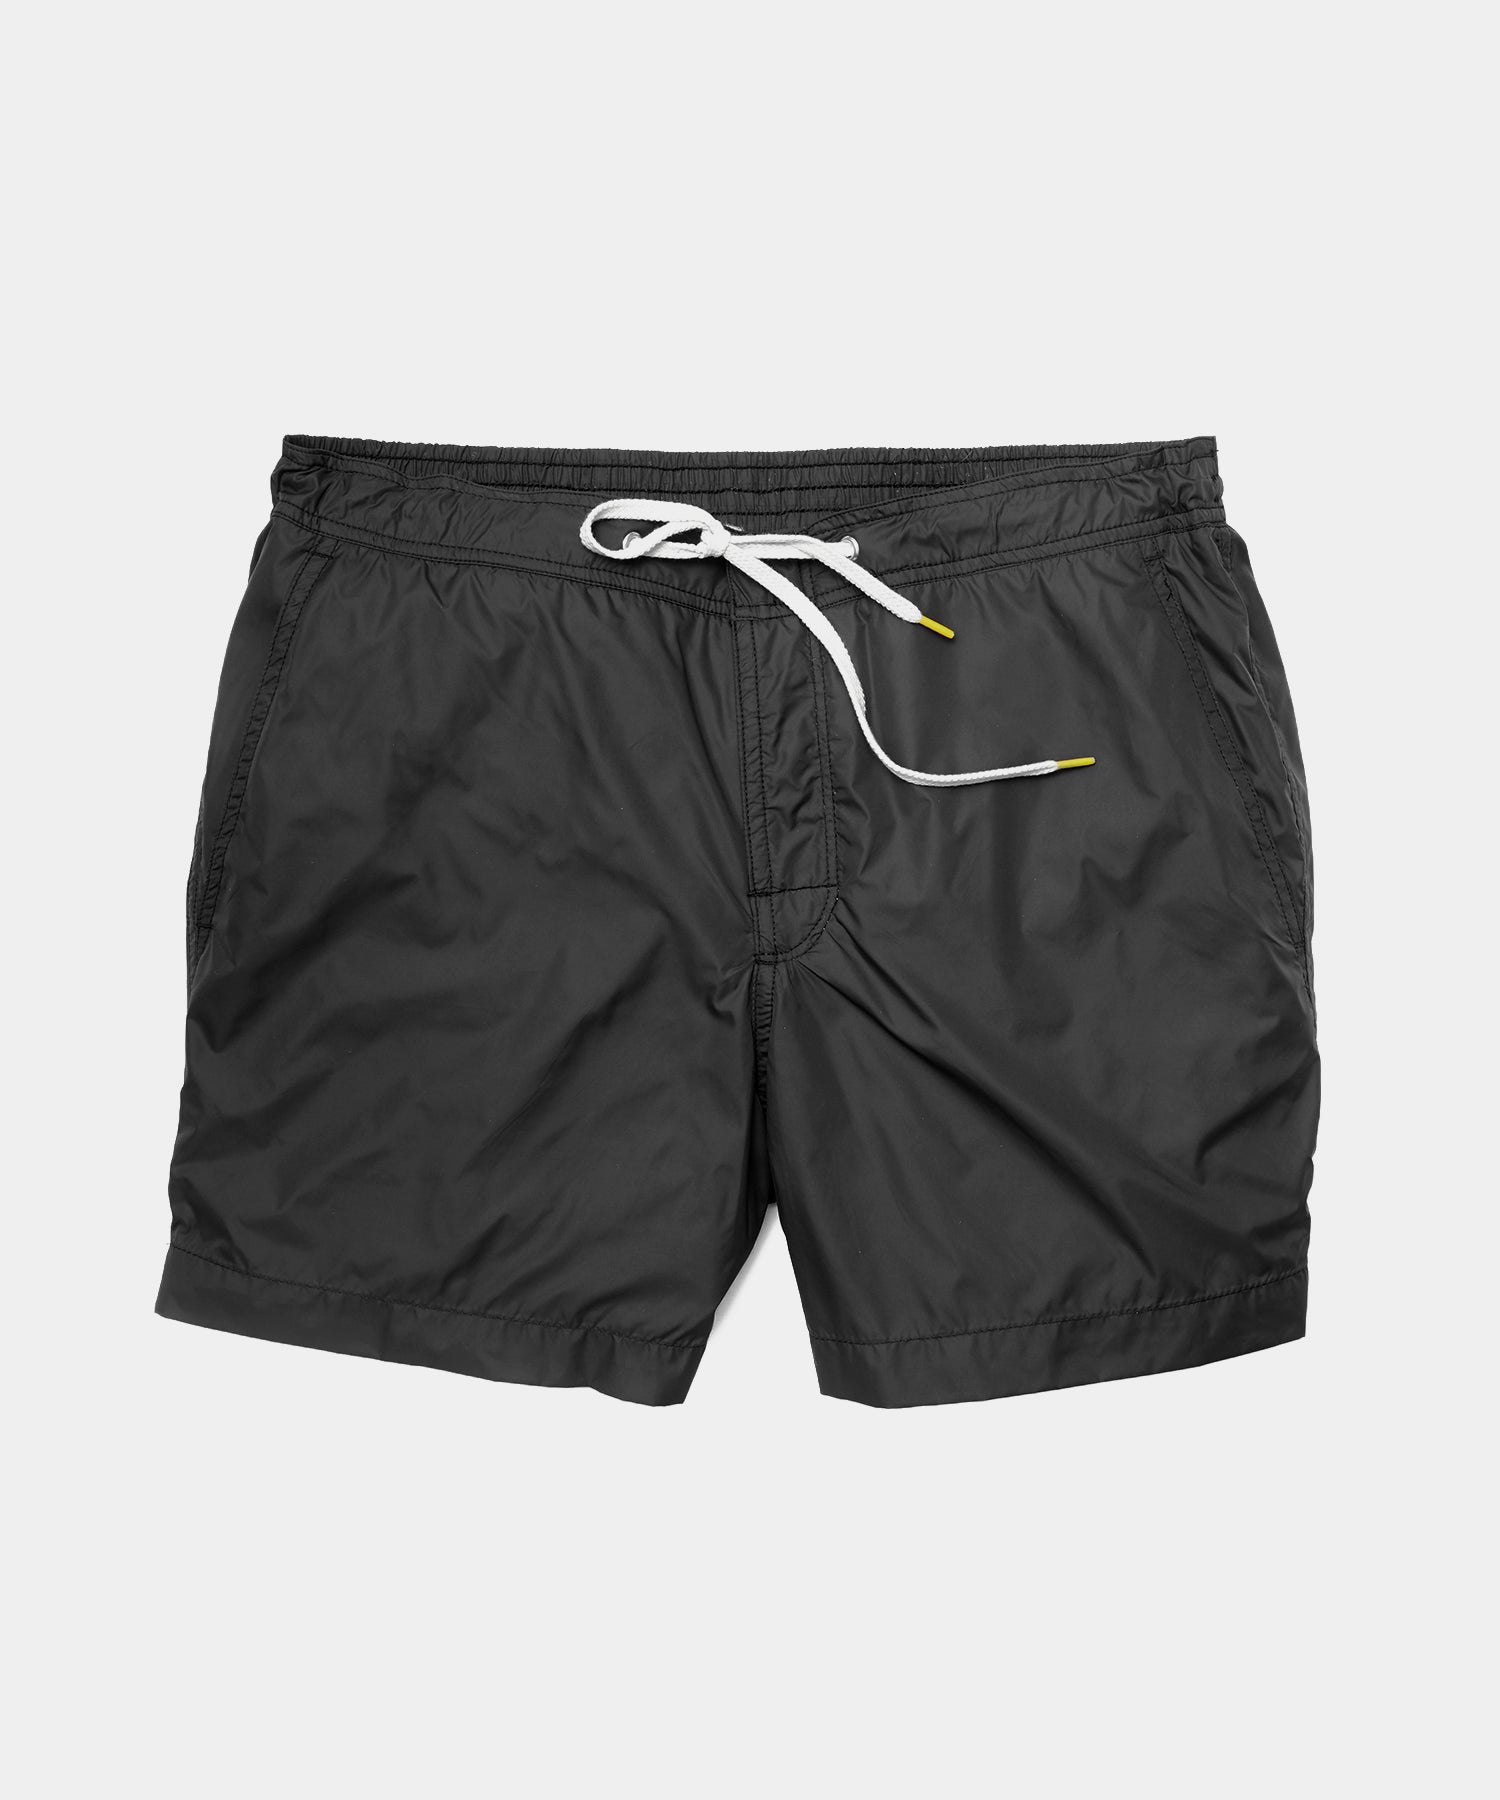 Hartford Kuta Swim Trunk in Graphite